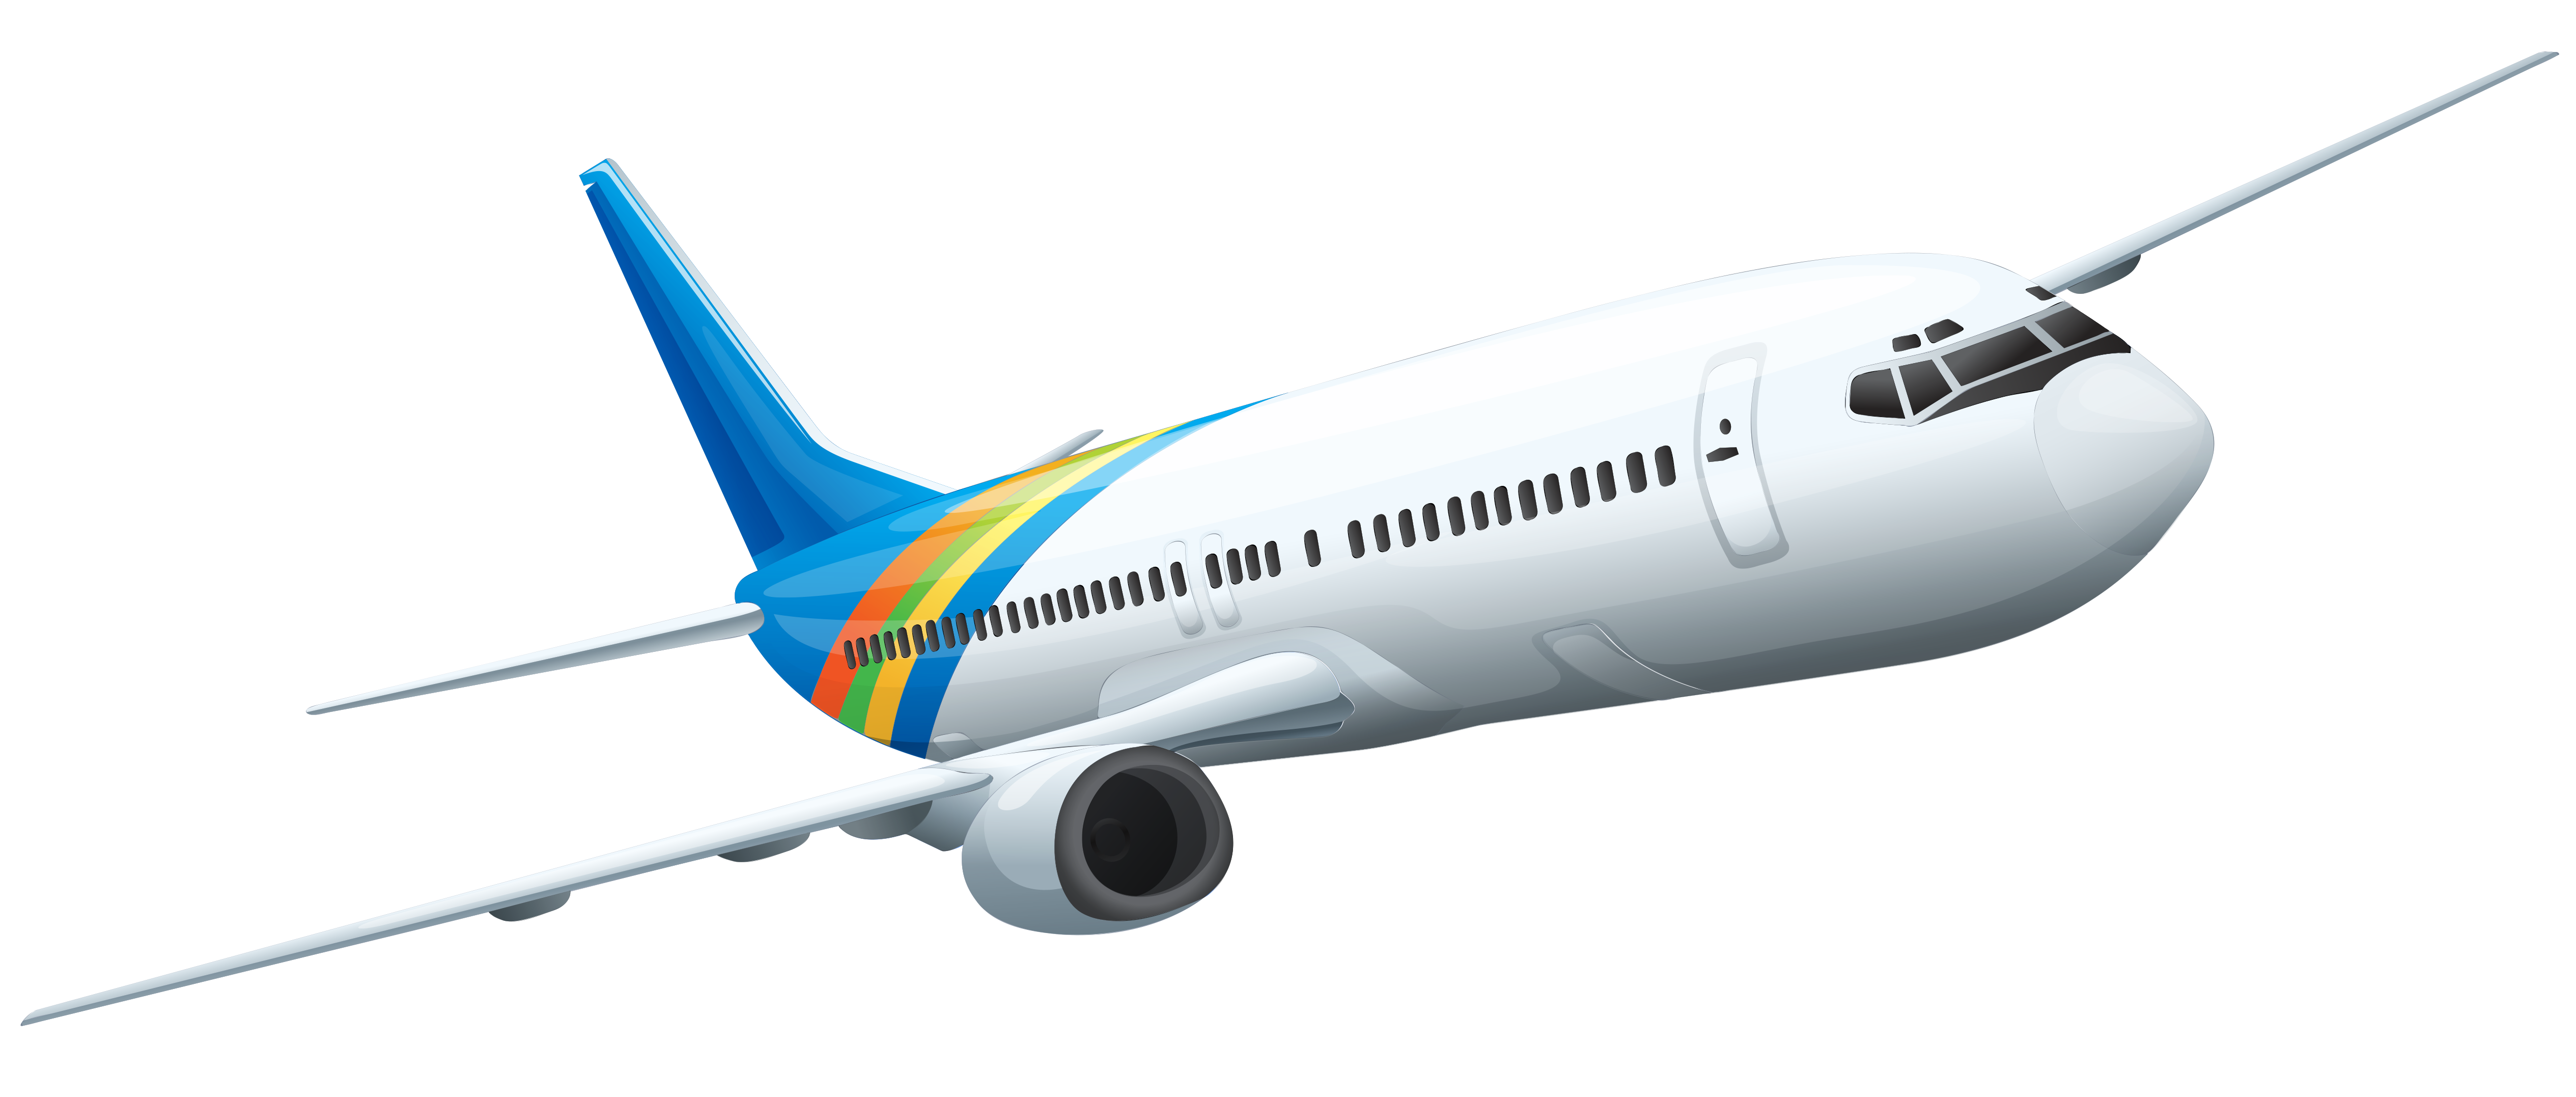 Free PNG HD Planes Transparent HD Planes.PNG Images..